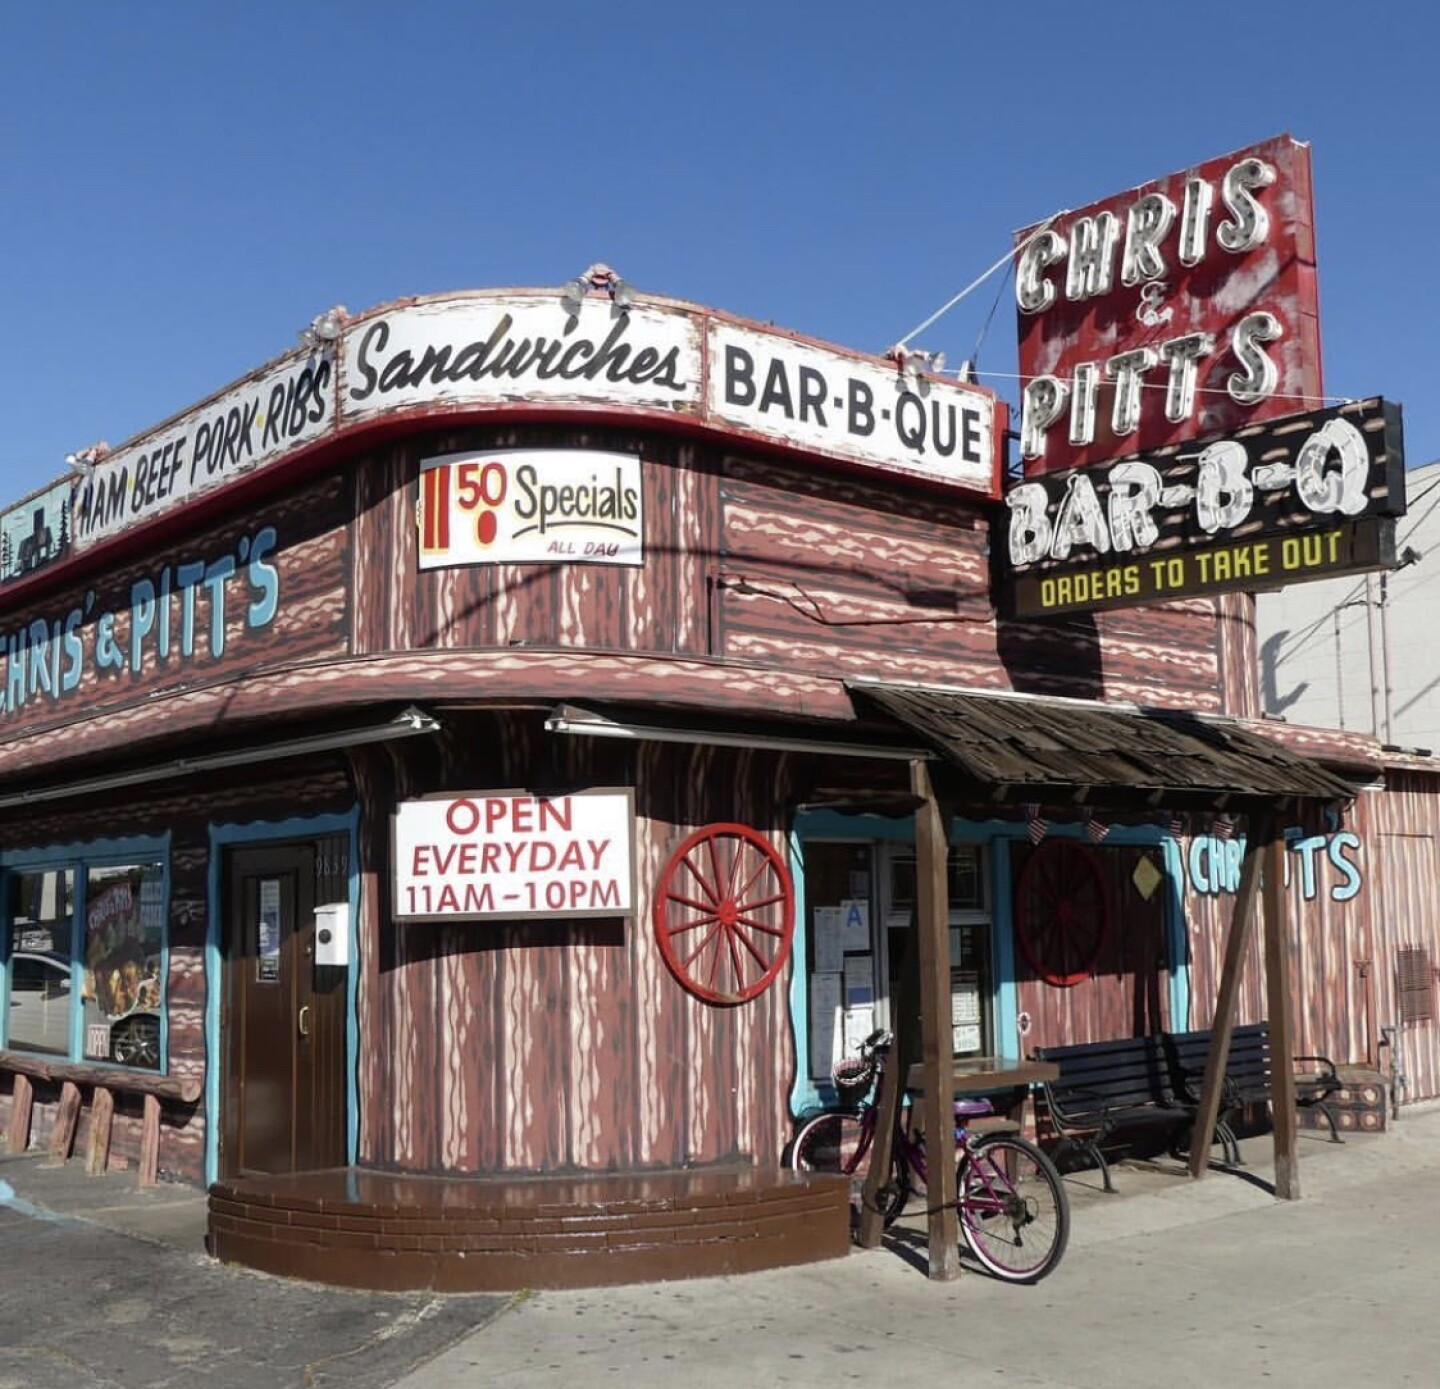 """The exterior of a brown building made to look like a log-cabin. The sign reads """"Chris' & Pitt's Bar-B-Q. Ham, Beef, Pork, Ribs, Sandwiches."""""""